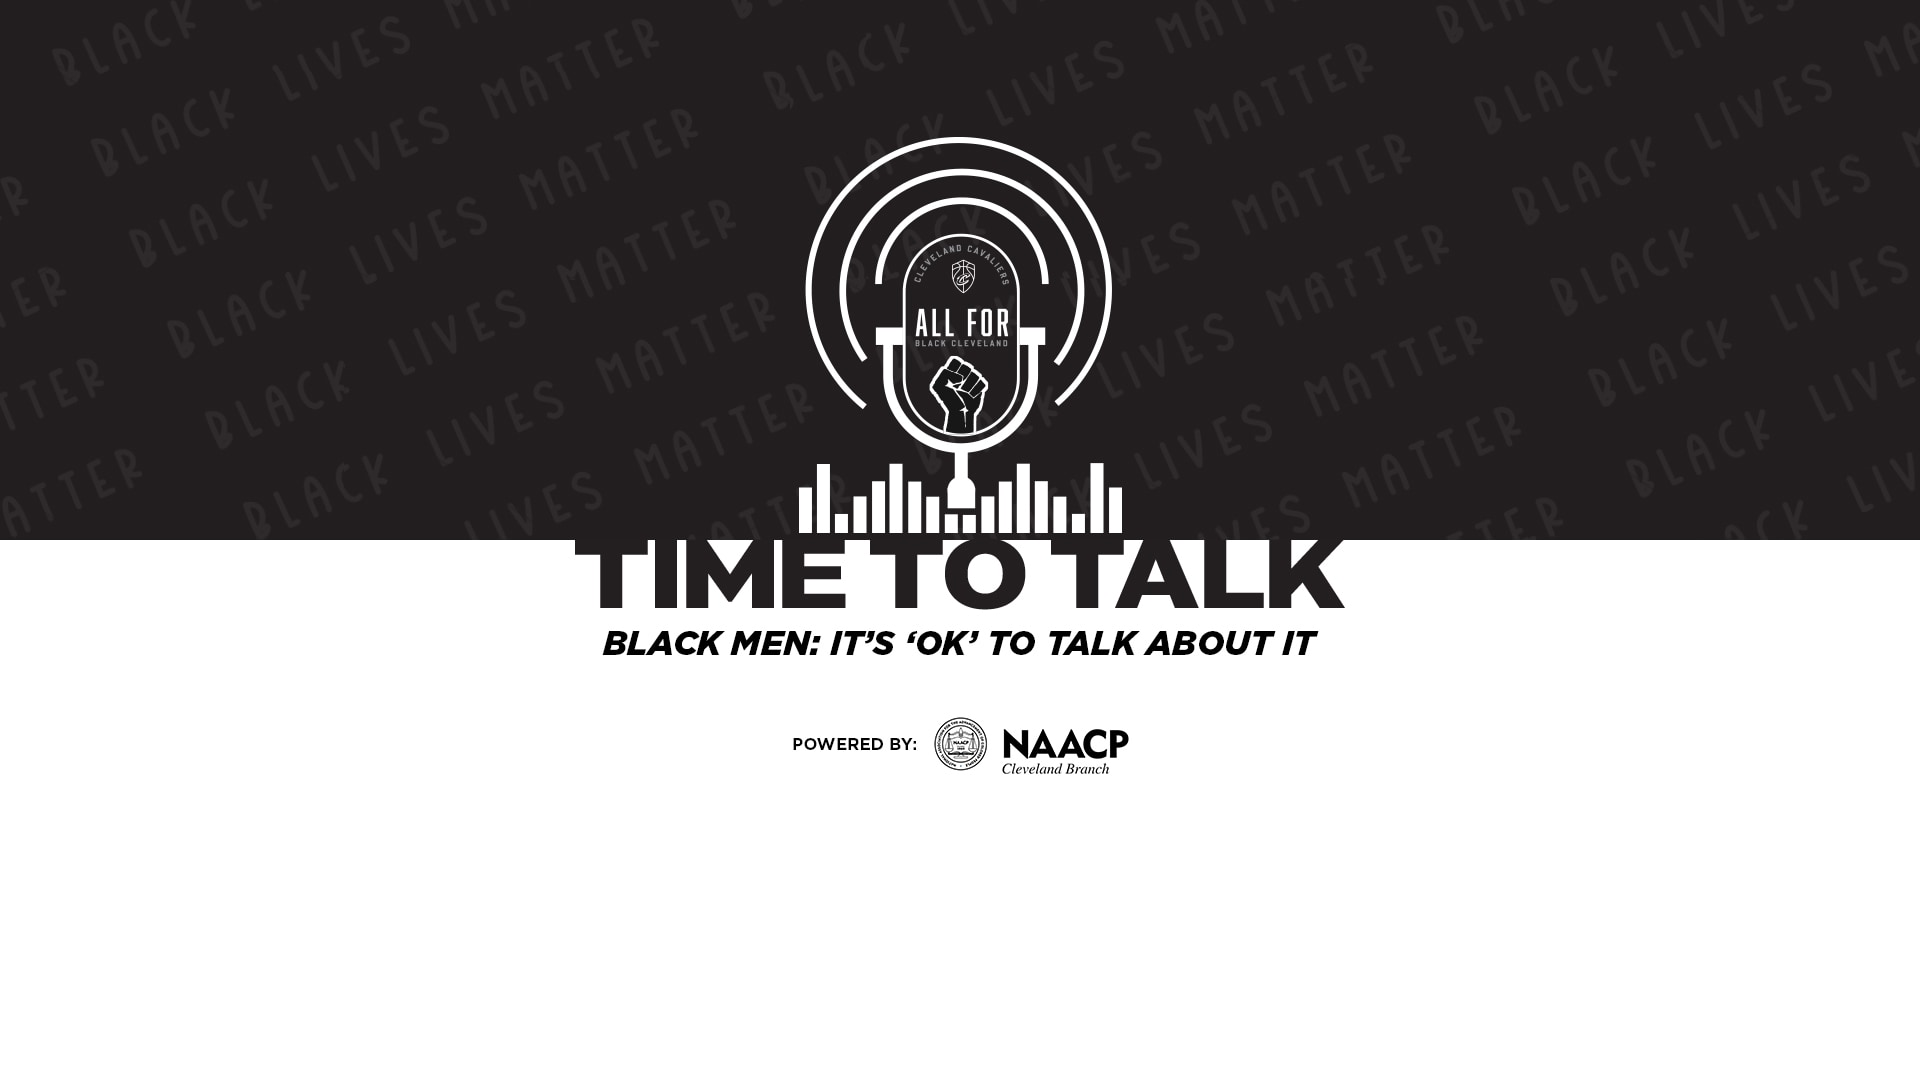 Time to Talk - Black Men: It's 'OK' to Talk About It